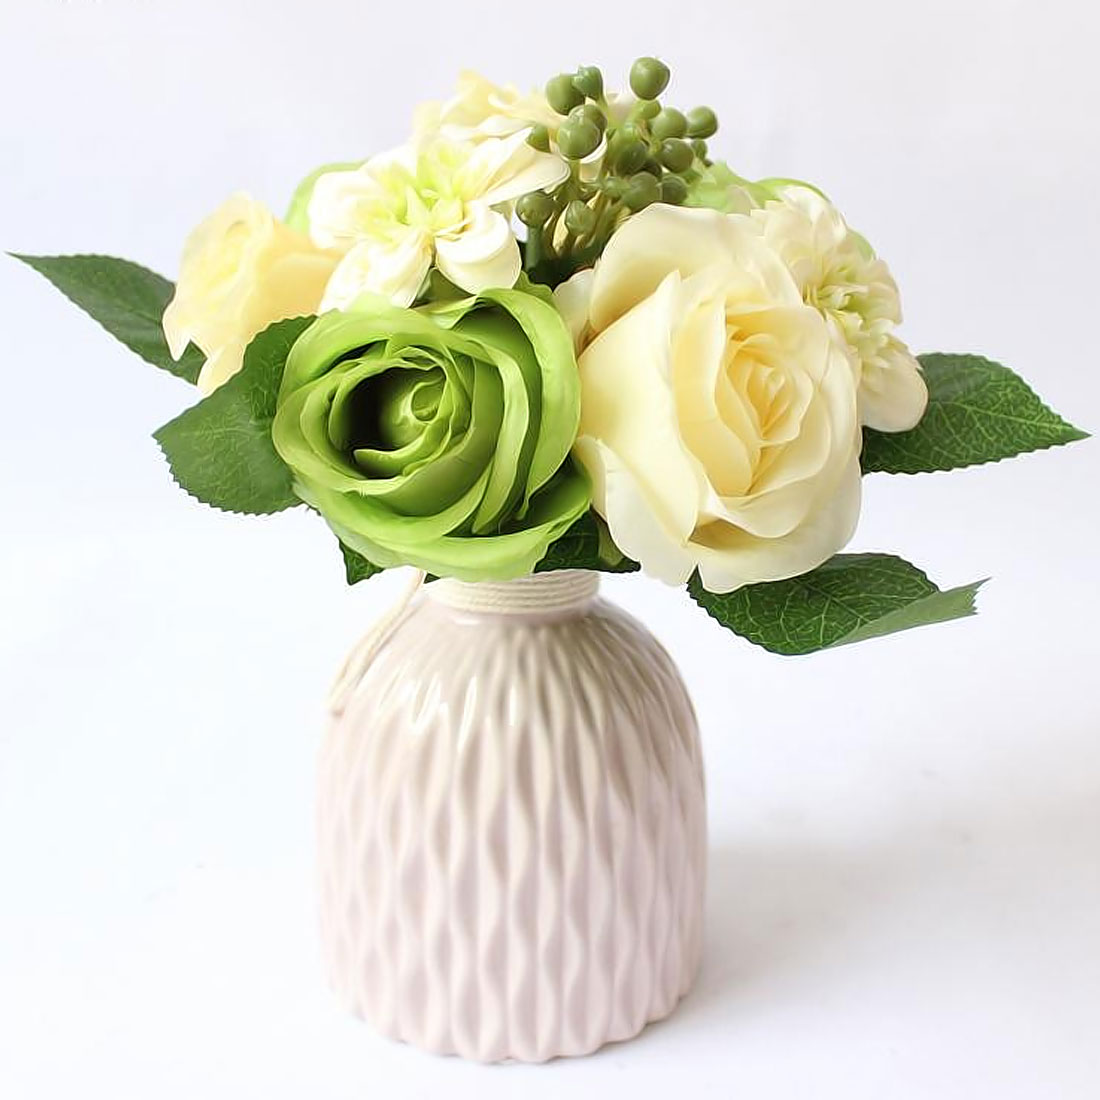 Flowers home decoration silk flower wedding bouquet roses dahlias flowers home decoration silk flower wedding bouquet roses dahlias artificial flowers fall vivid fake leaf flower 9 heads in artificial dried flowers from izmirmasajfo